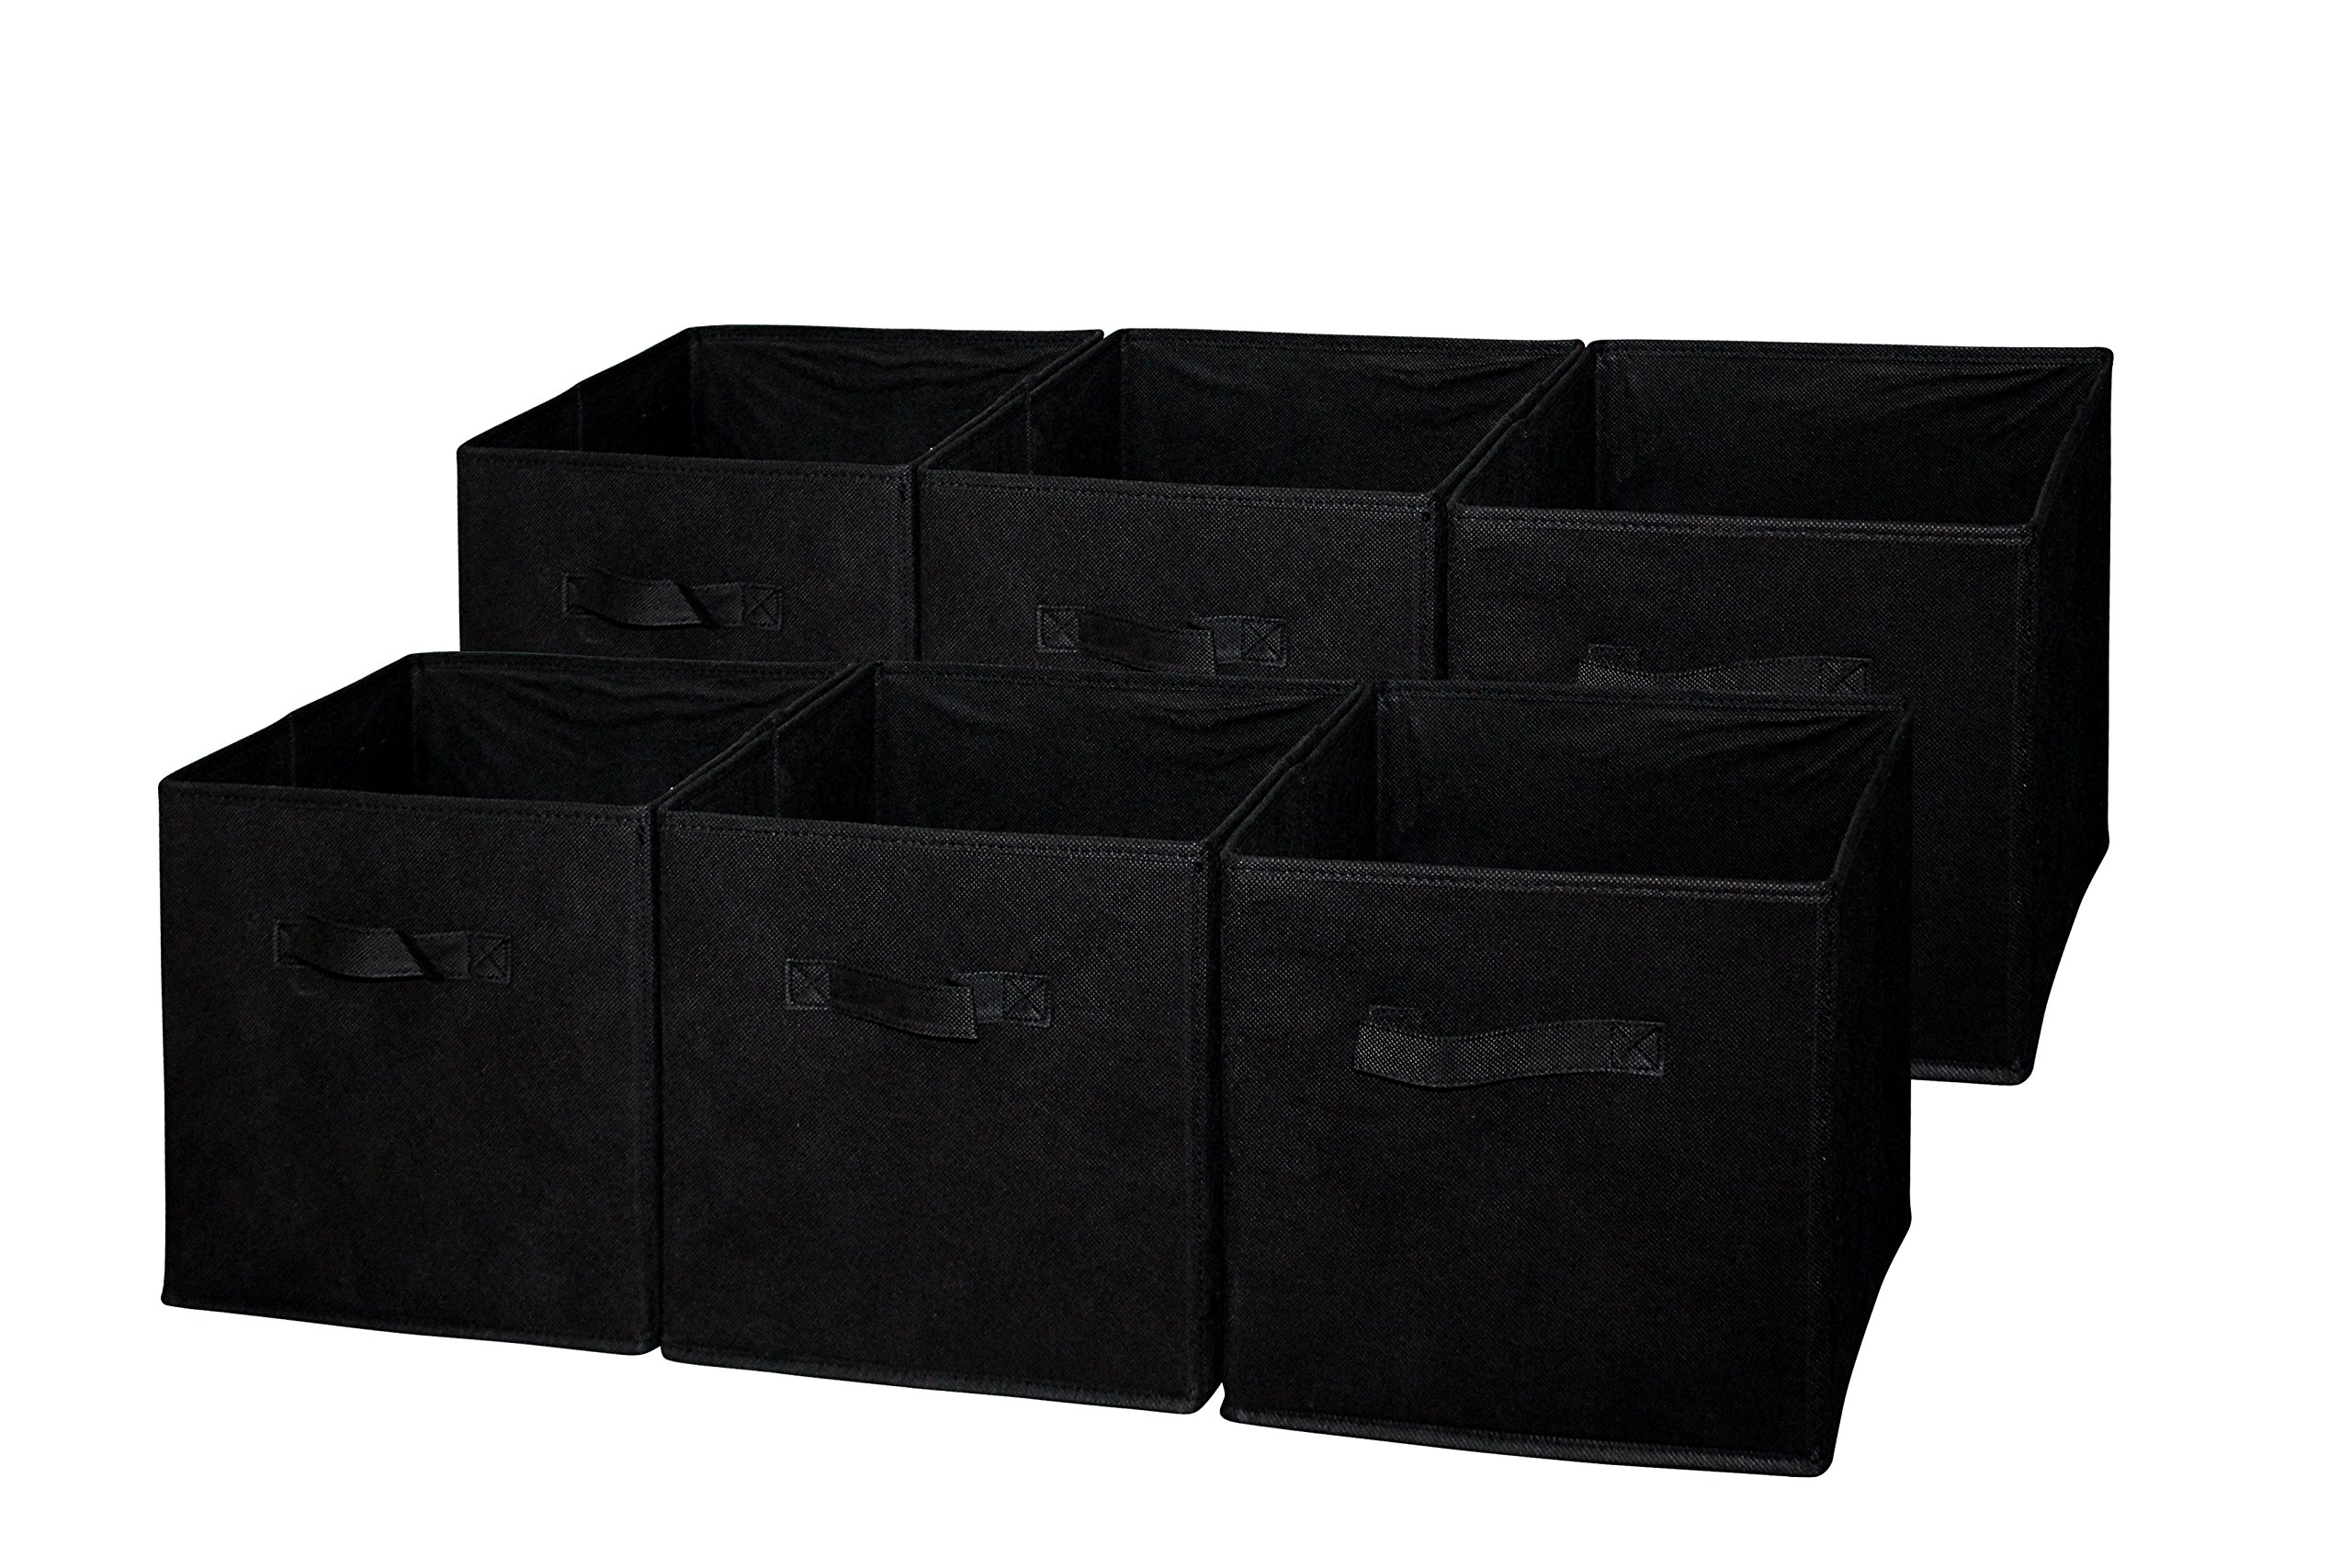 Sodynee Foldable Cloth Storage Cube Basket Bins Organizer Containers Drawers, 6 Pack, Black